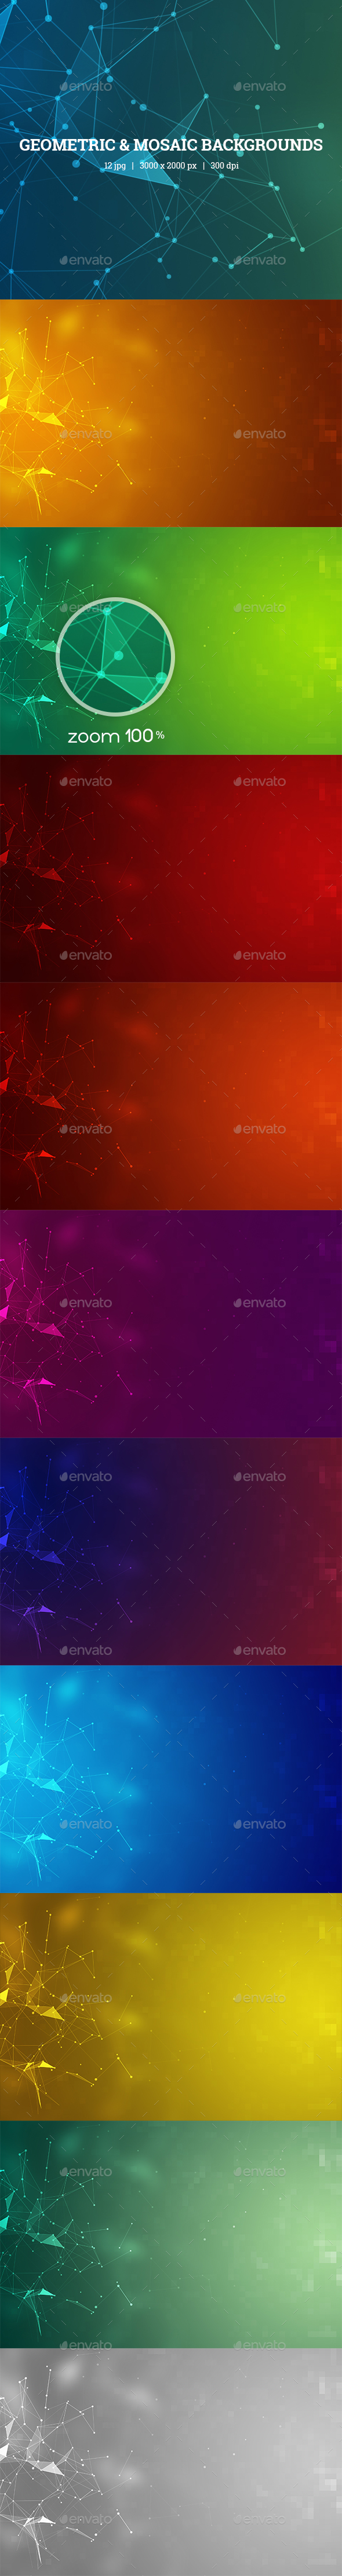 Geometric & Mosaic Backgrounds - Backgrounds Graphics